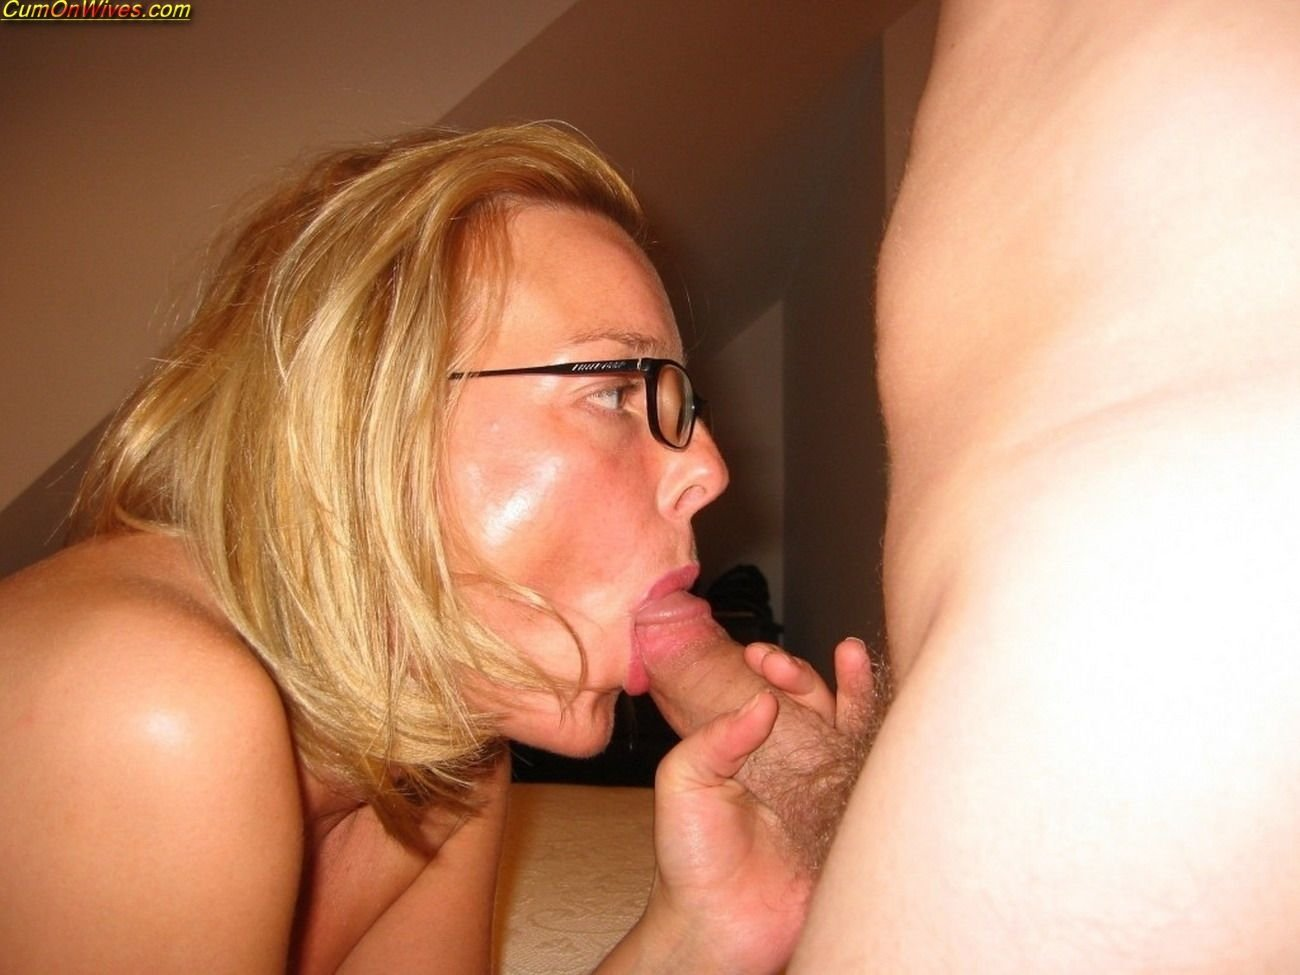 That interfere, amateur mature wife with glasses